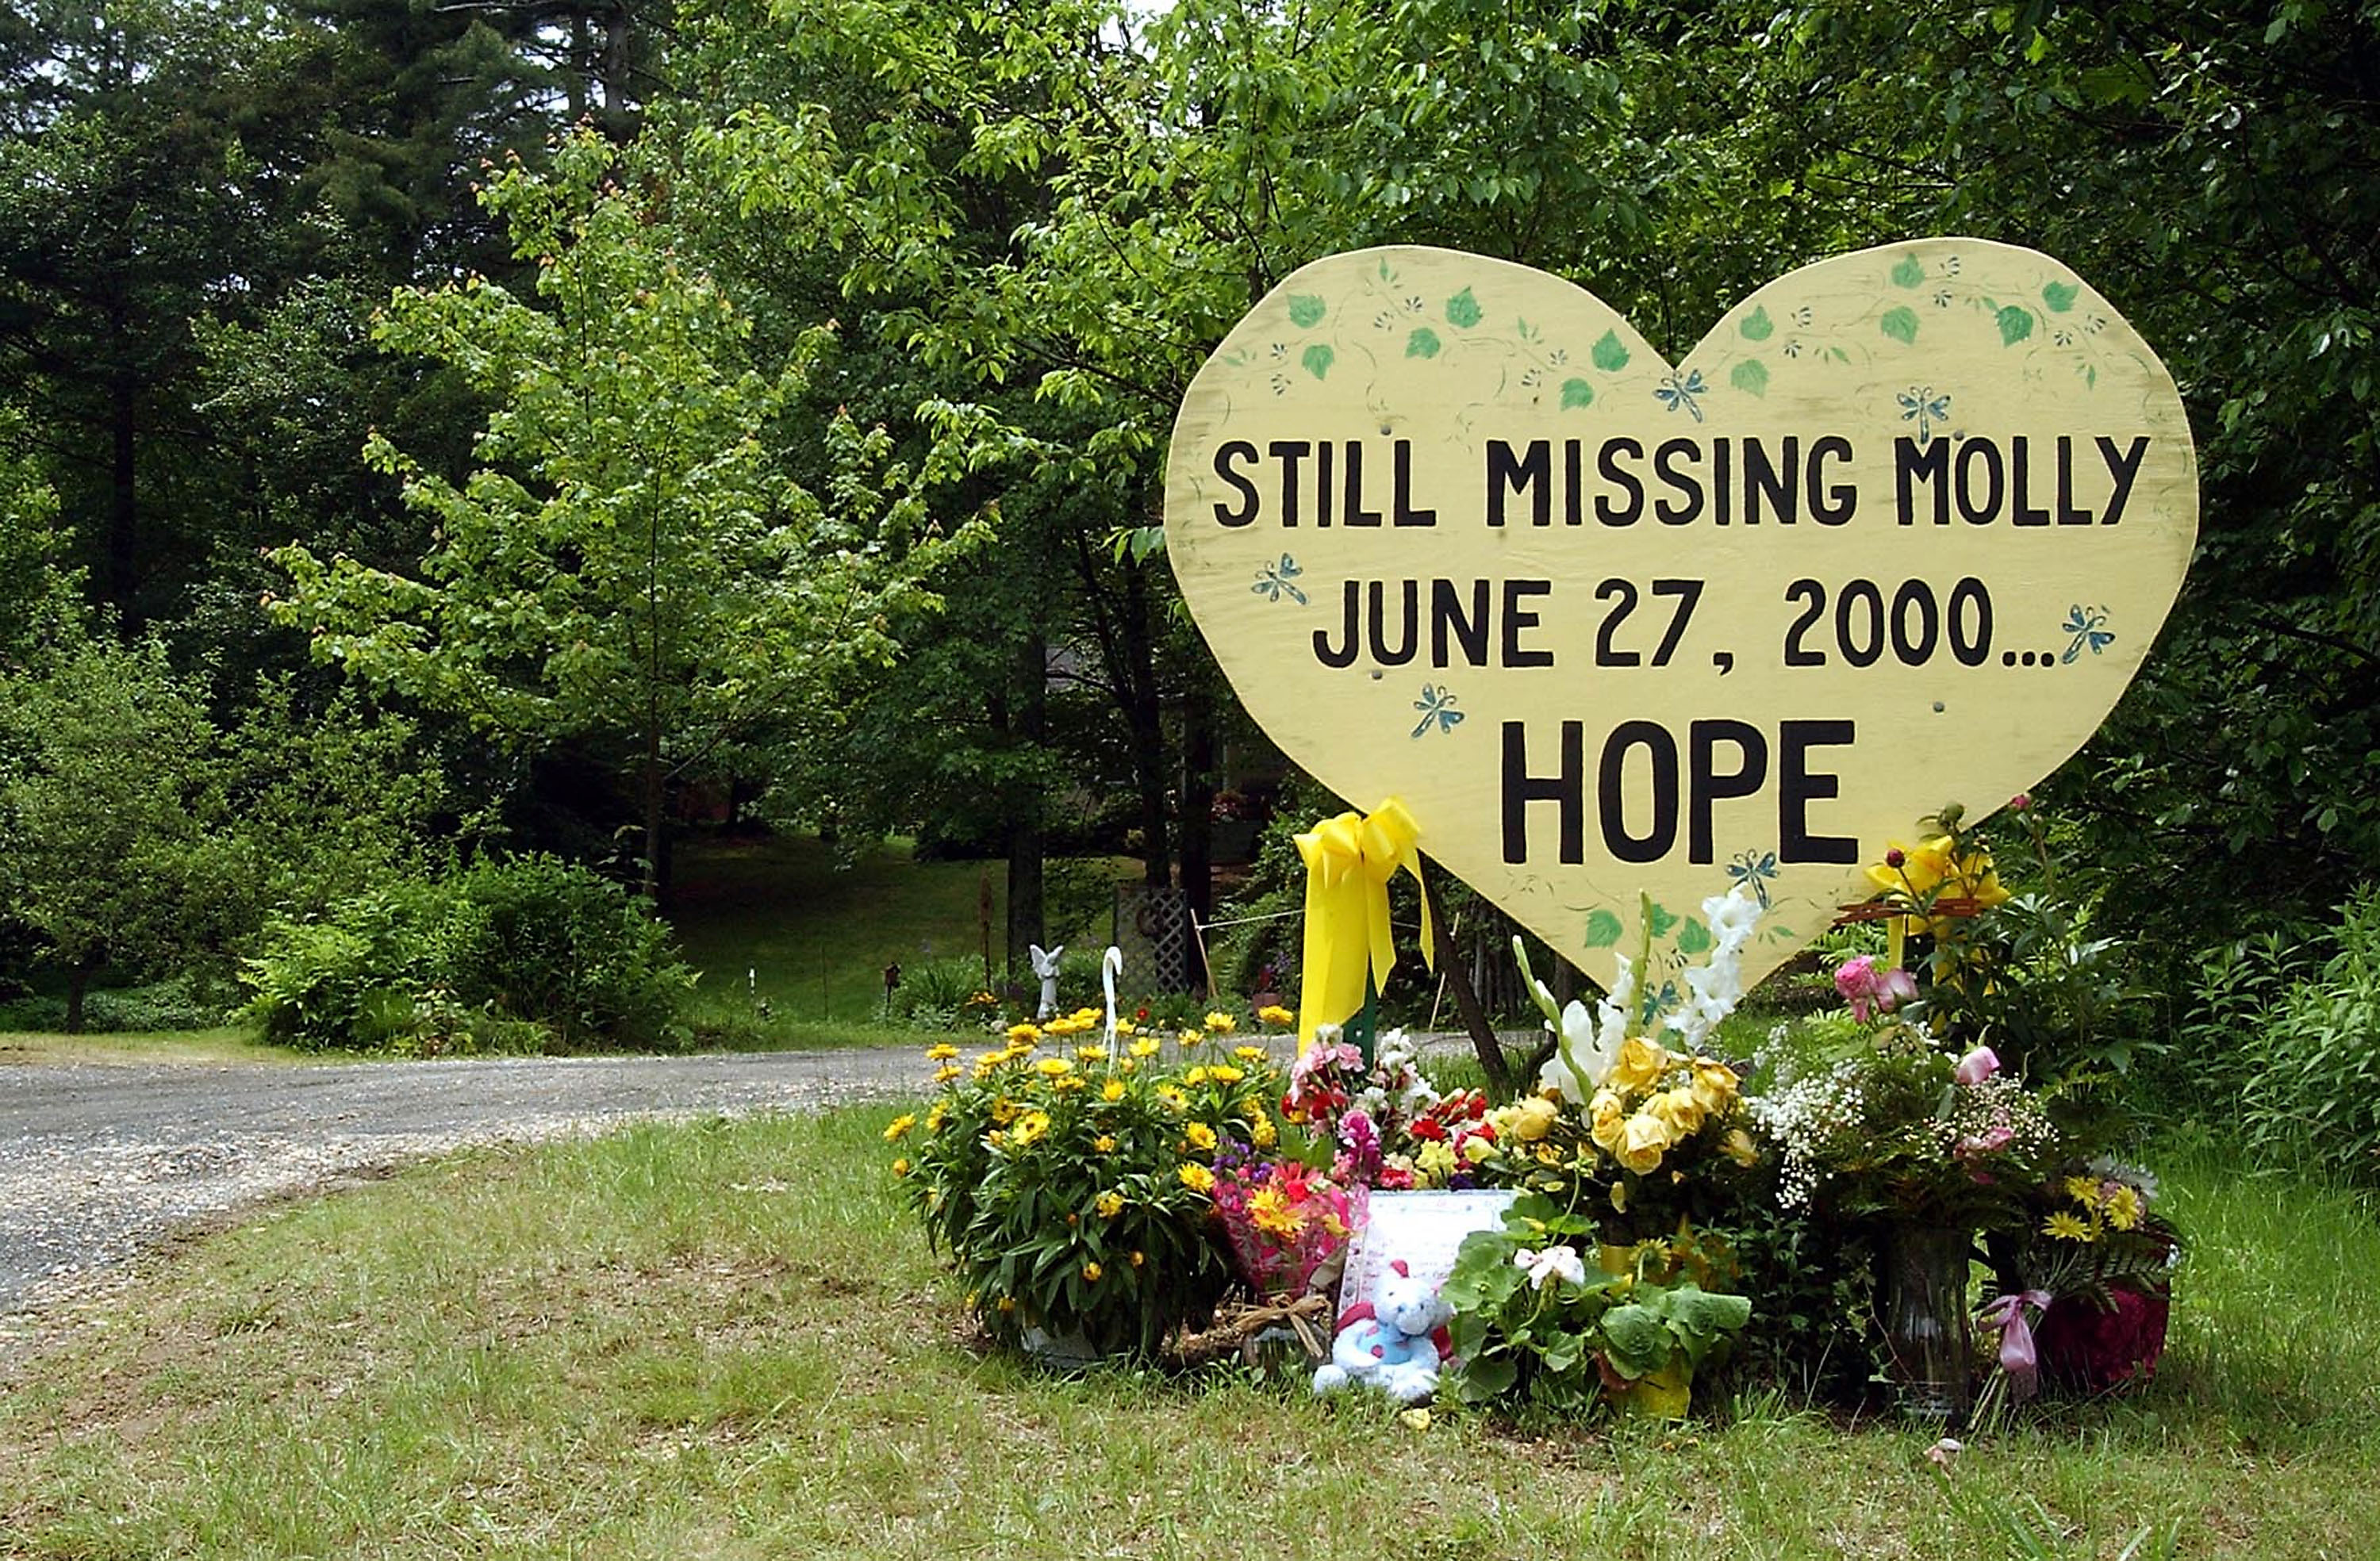 WARREN, MA - JUNE 12: A message adorns the yard of the family of missing lifeguard Molly Bish June 12, 2003 in Warren, Massachusetts. The remains of Bish, who disappeared in 2000 from her post at the rural pond where she worked, were positively identified. (Photo by Jessica Rinaldi/Getty Images)